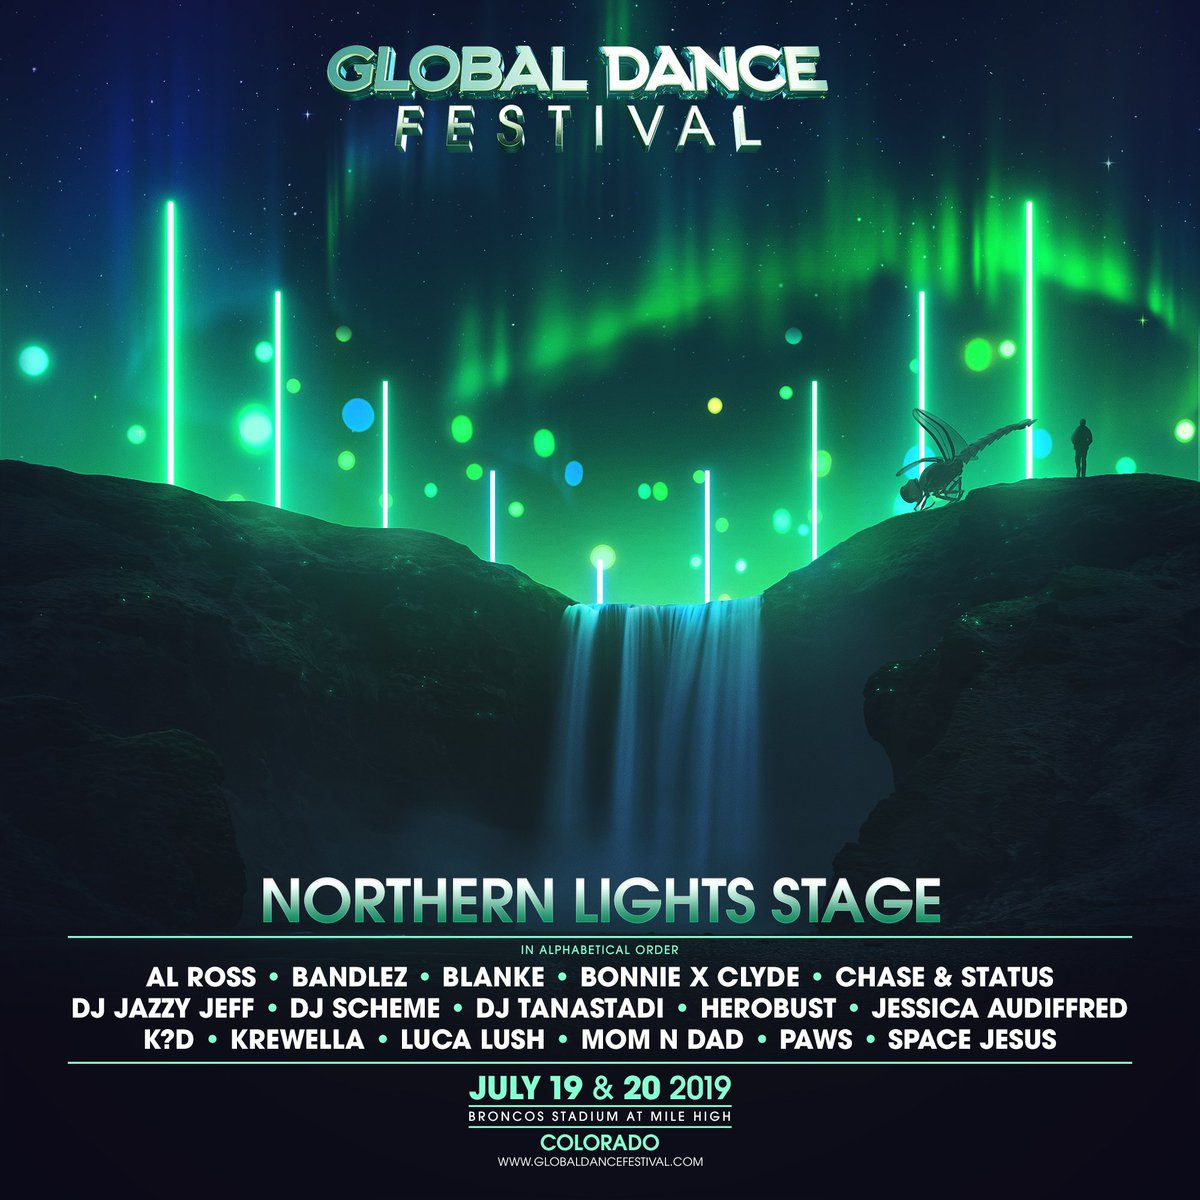 The Global Dance Festival Northern Lights lineup for 2019